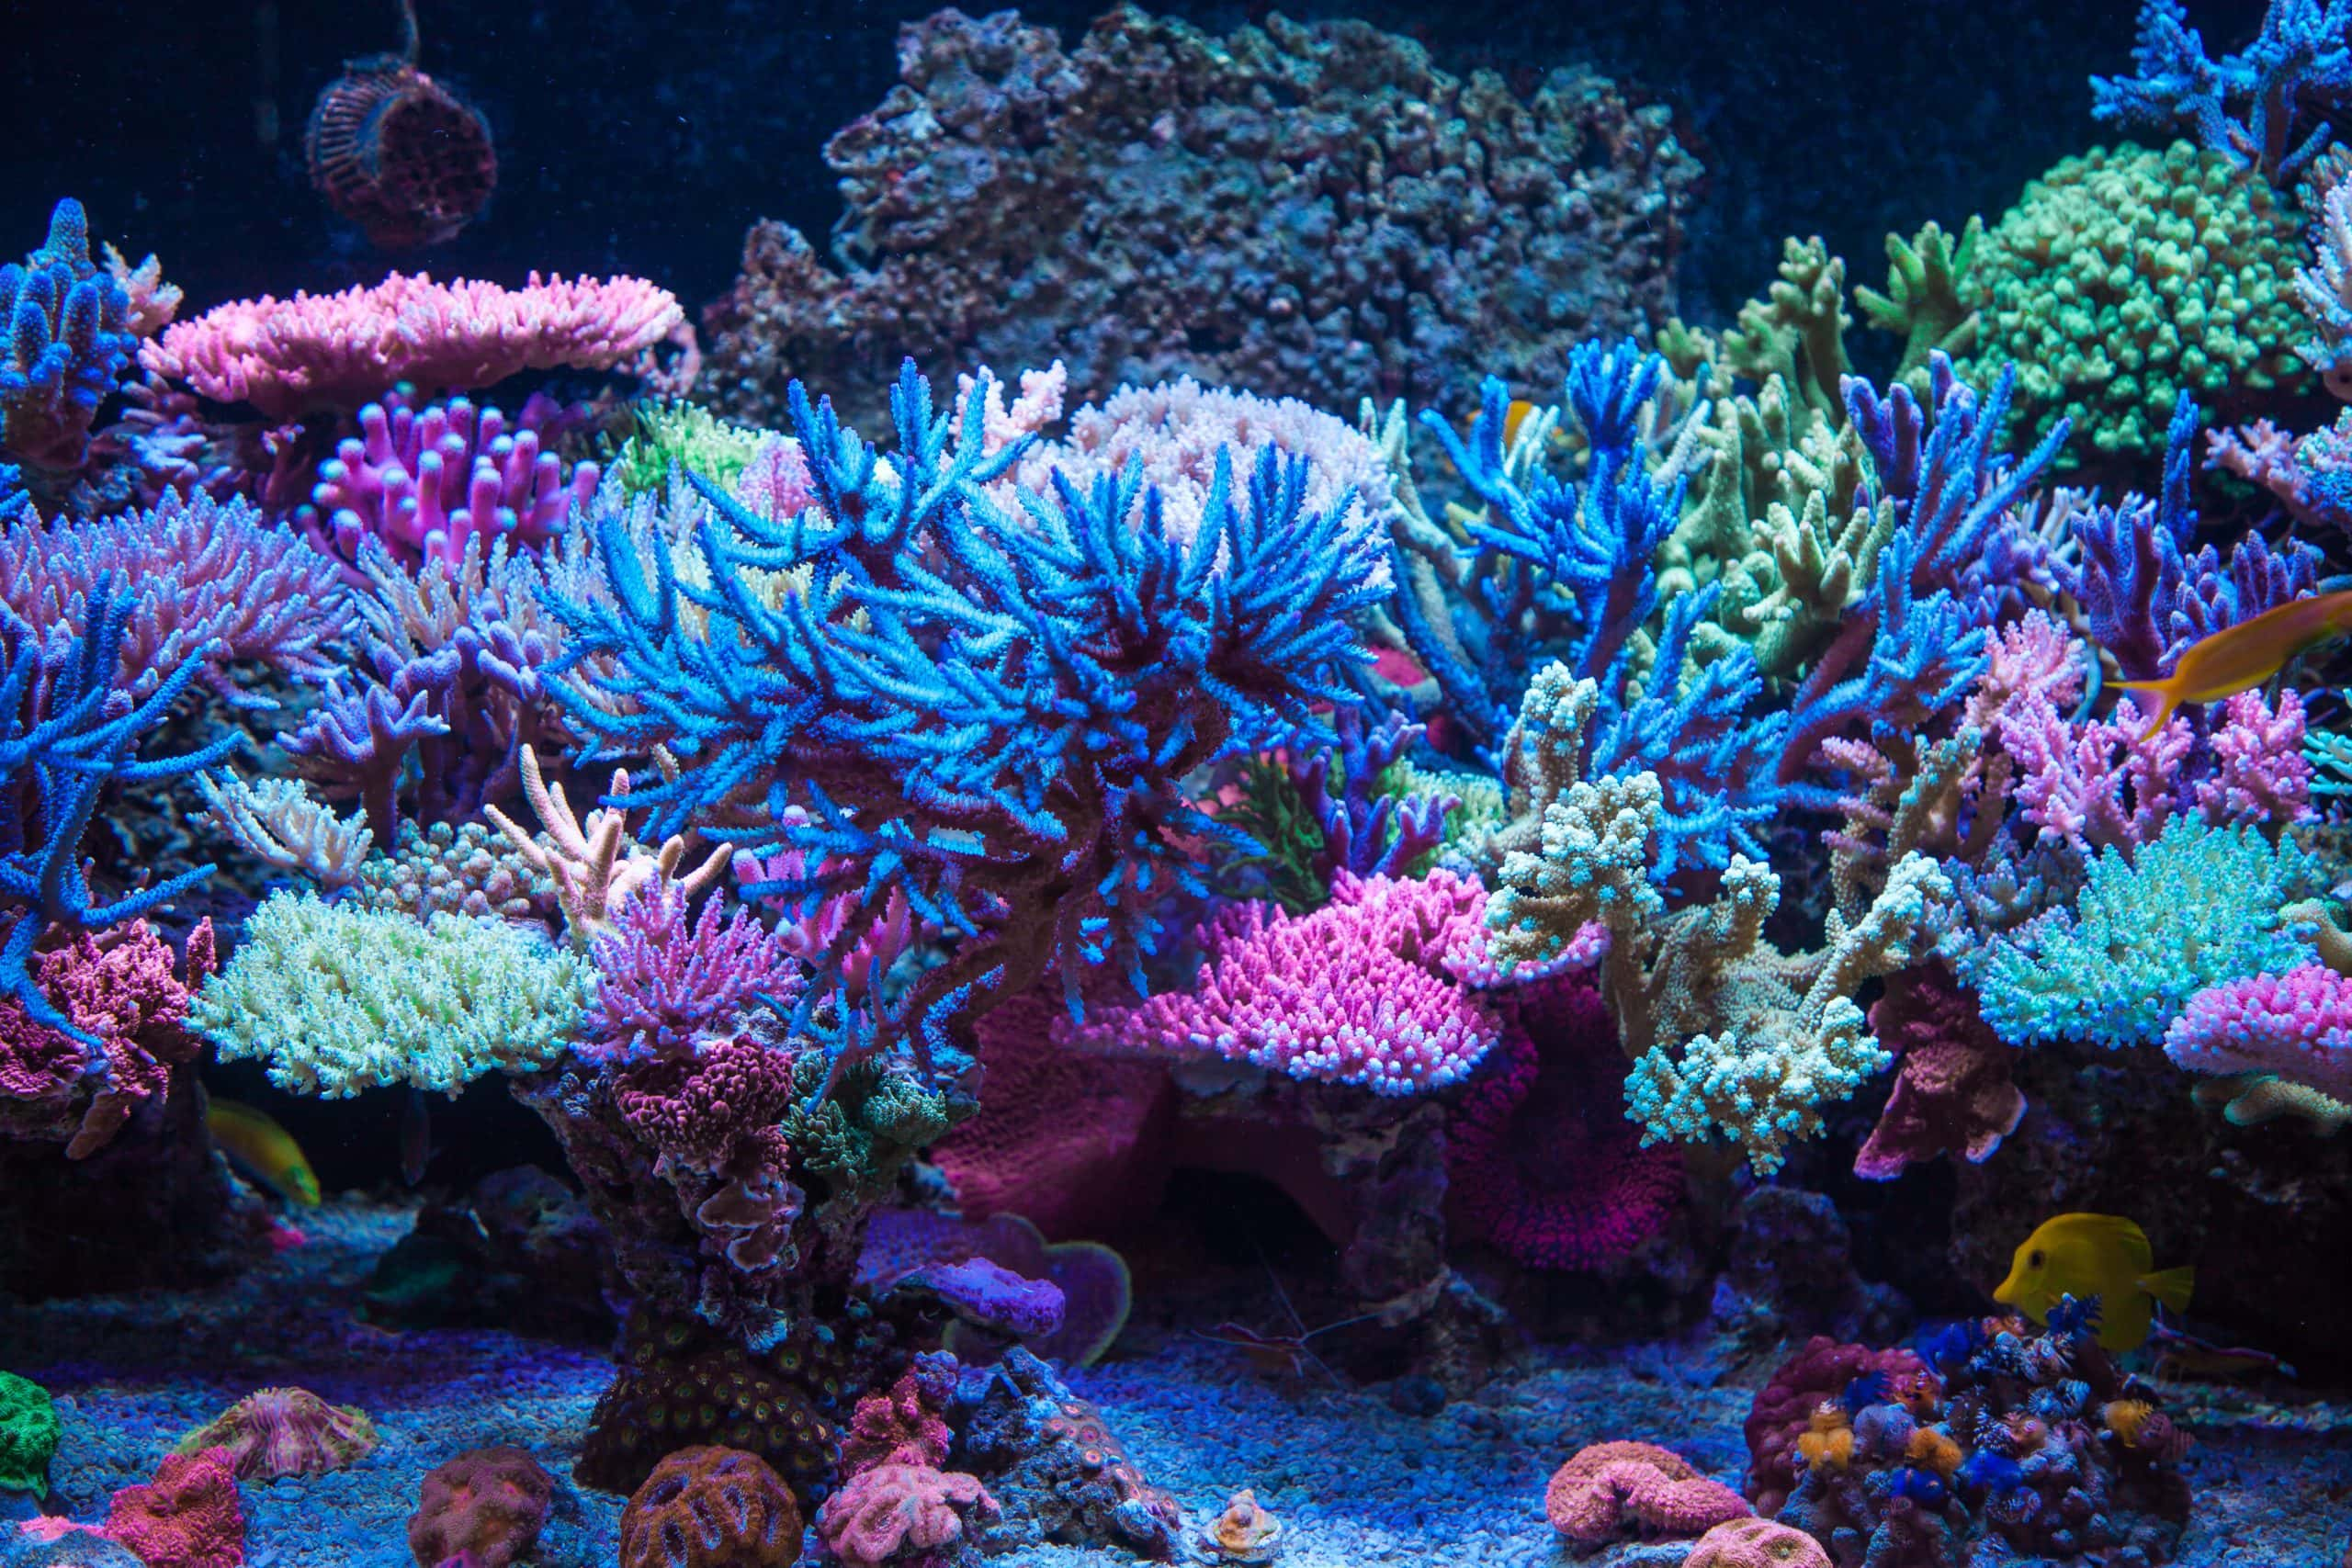 Aquariums like this are very tuned for Coral Growth